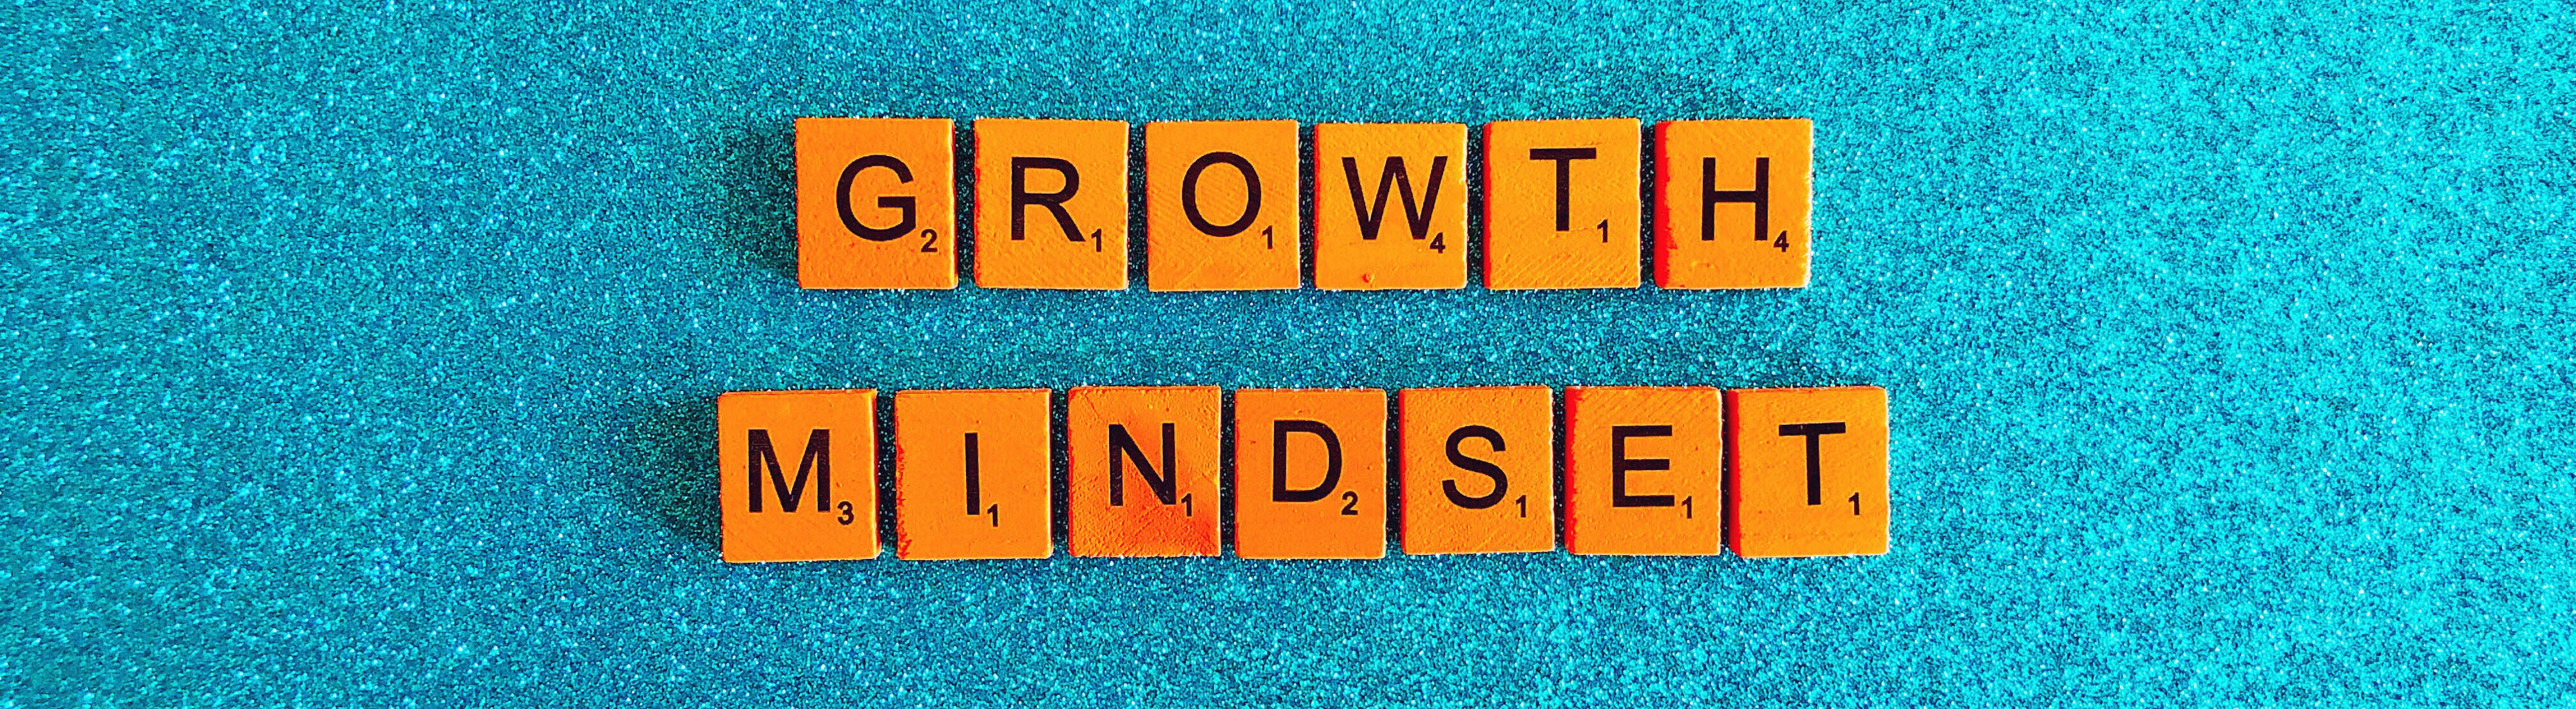 Image showing letters: Growth Mindset